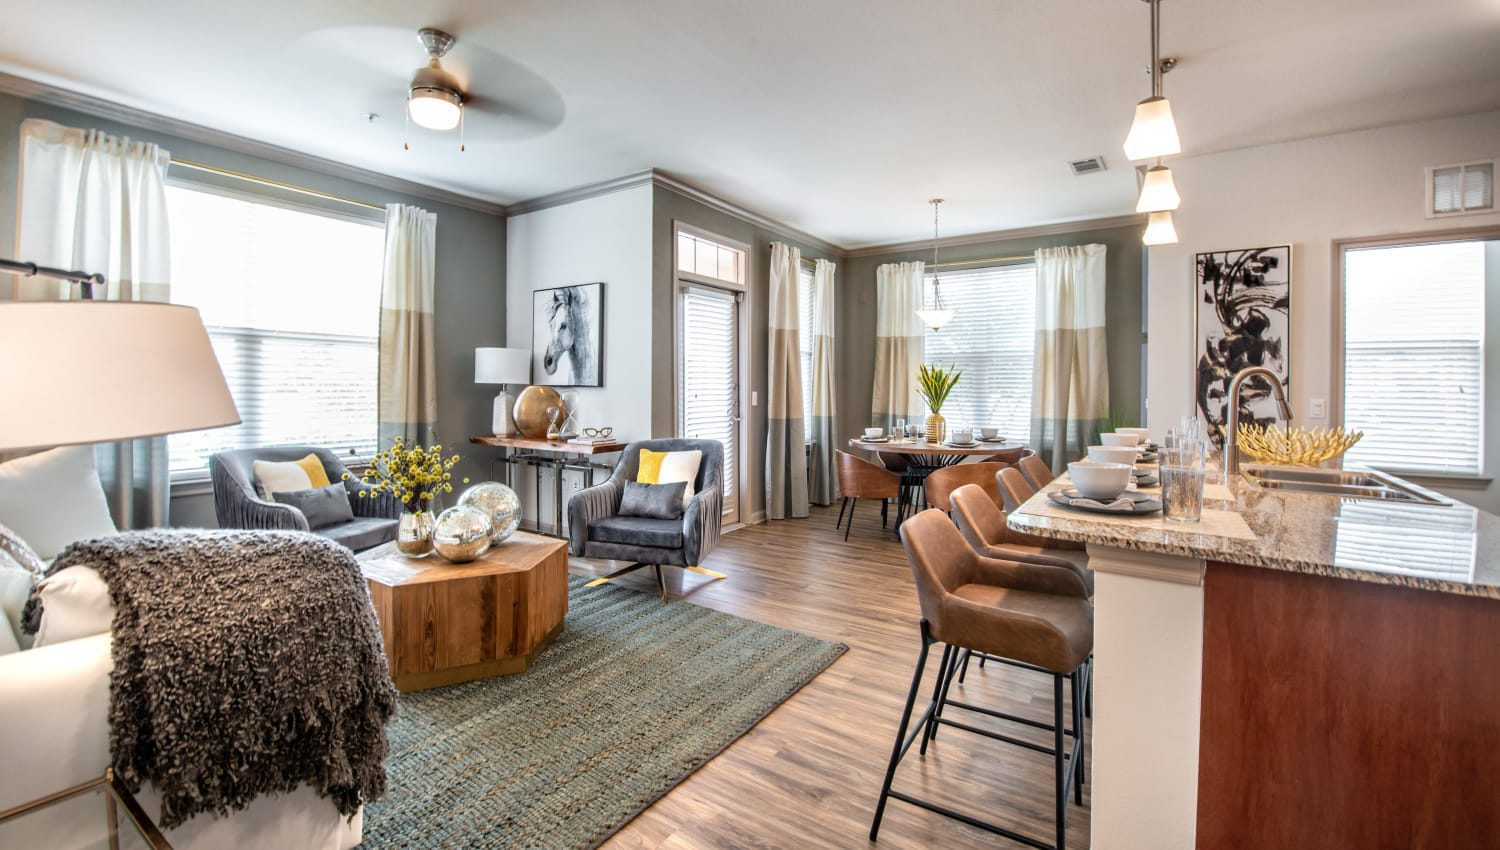 Model living room and kitchen with style at Olympus Katy Ranch in Katy, Texas